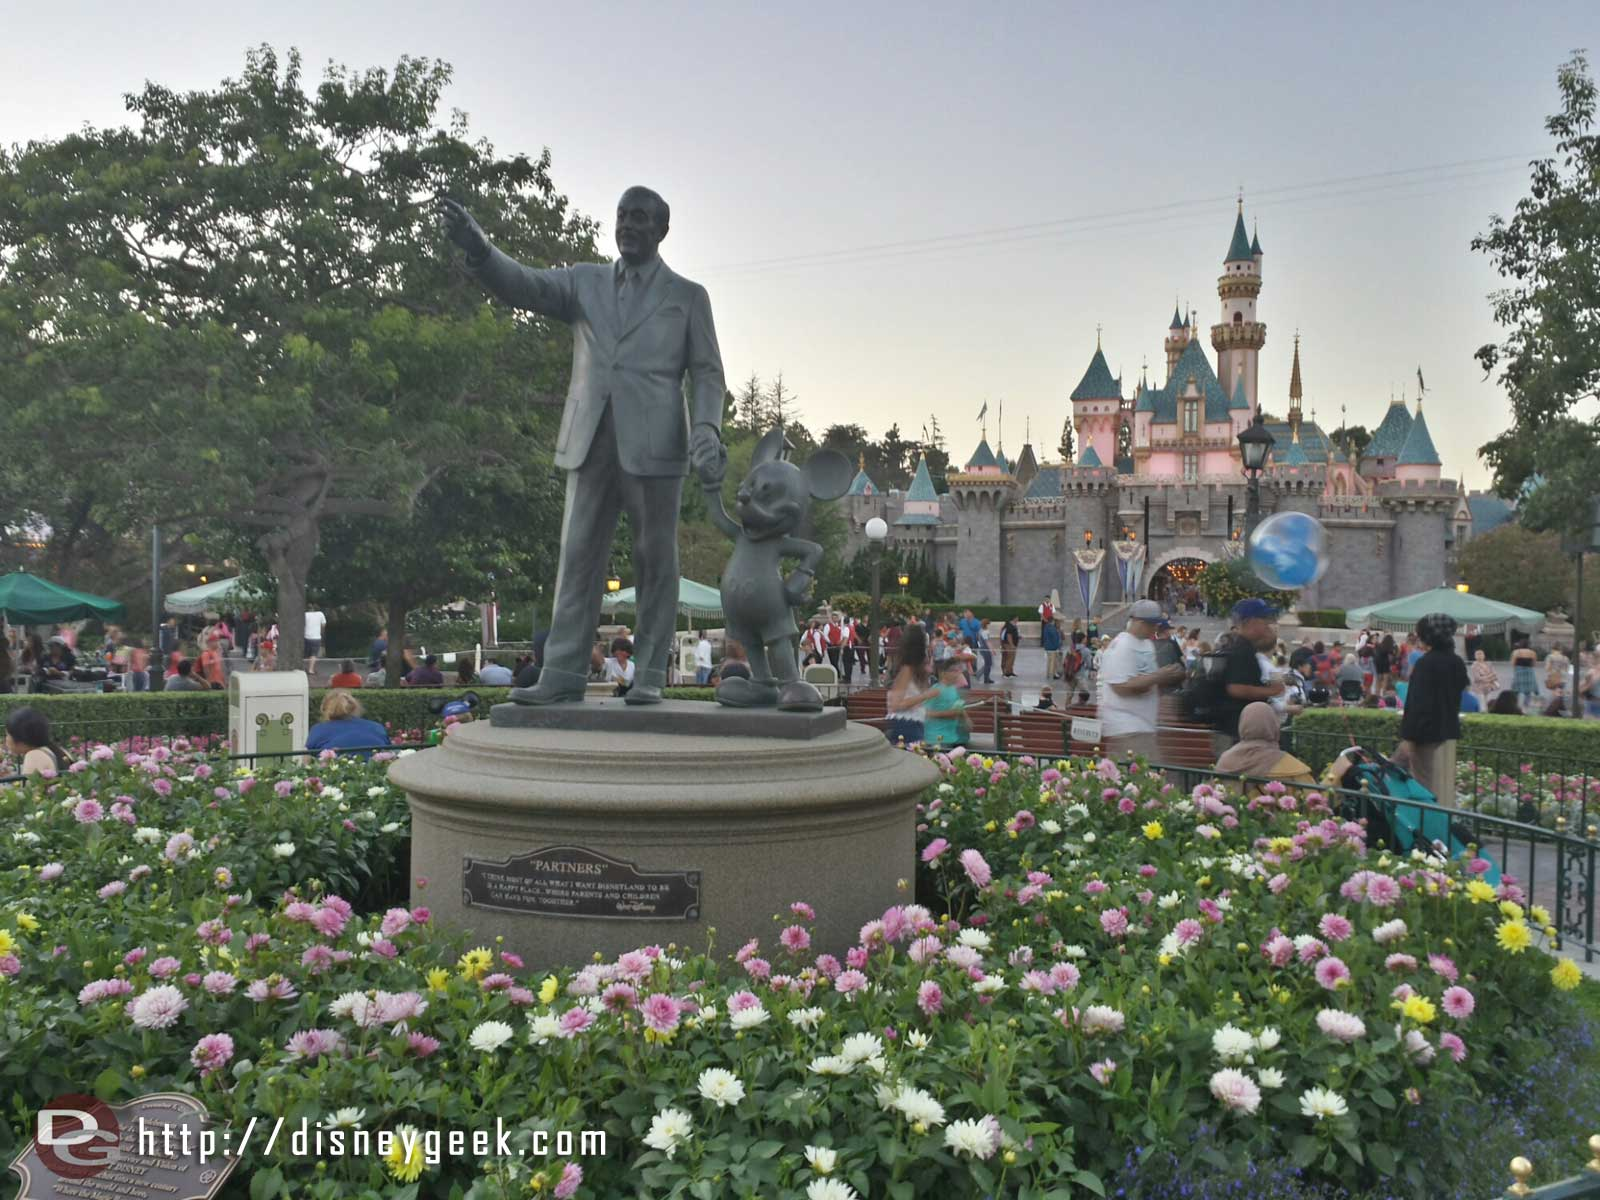 Partners statue and Sleeping Beauty Castle #Disneyland